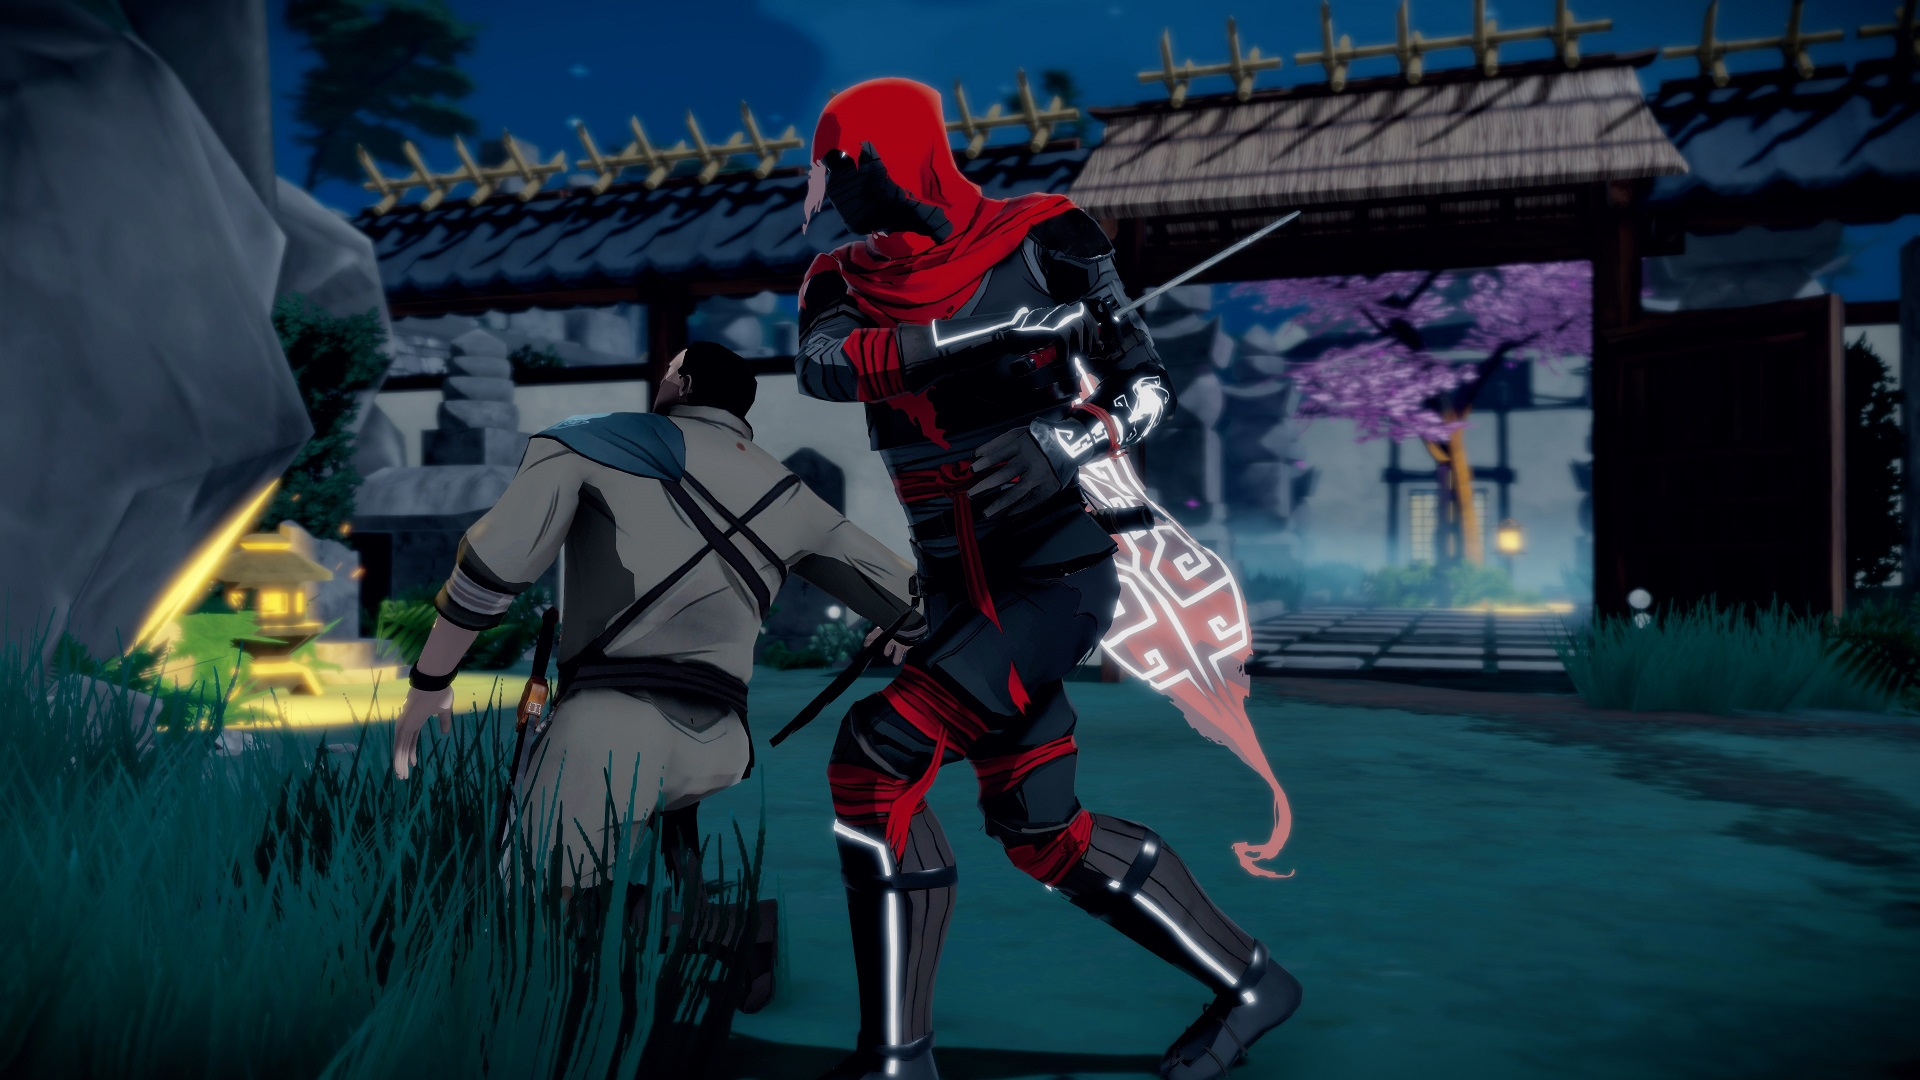 Aragami Backgrounds on Wallpapers Vista